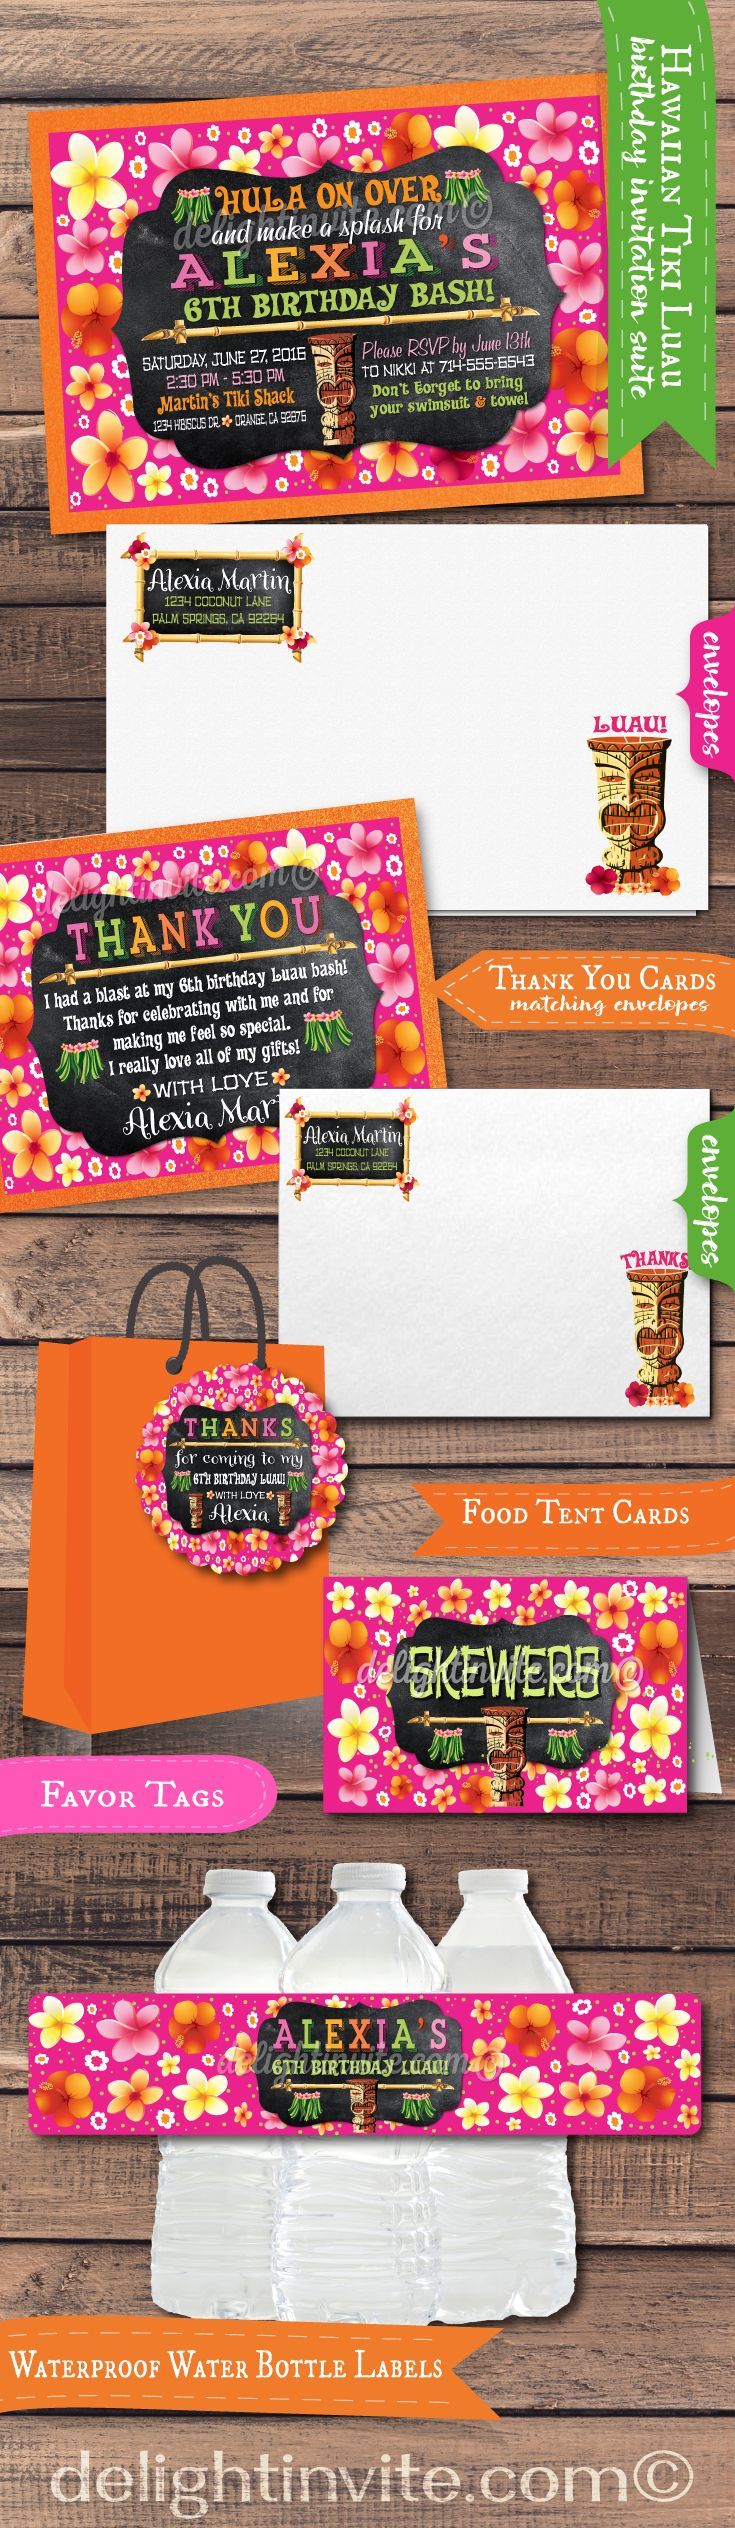 This retro chalkboard tiki Hawaiian Luau party invitation set is perfect for your upcoming Luau celebration! Beautiful colorful hibiscus flowers, vintage fonts, retro tiki gods, and adorable grass skirts makes this Luau party set absolutely fabulous in person! Professionally printed on fantastic, high quality card stocks, this Luau set is a must have!